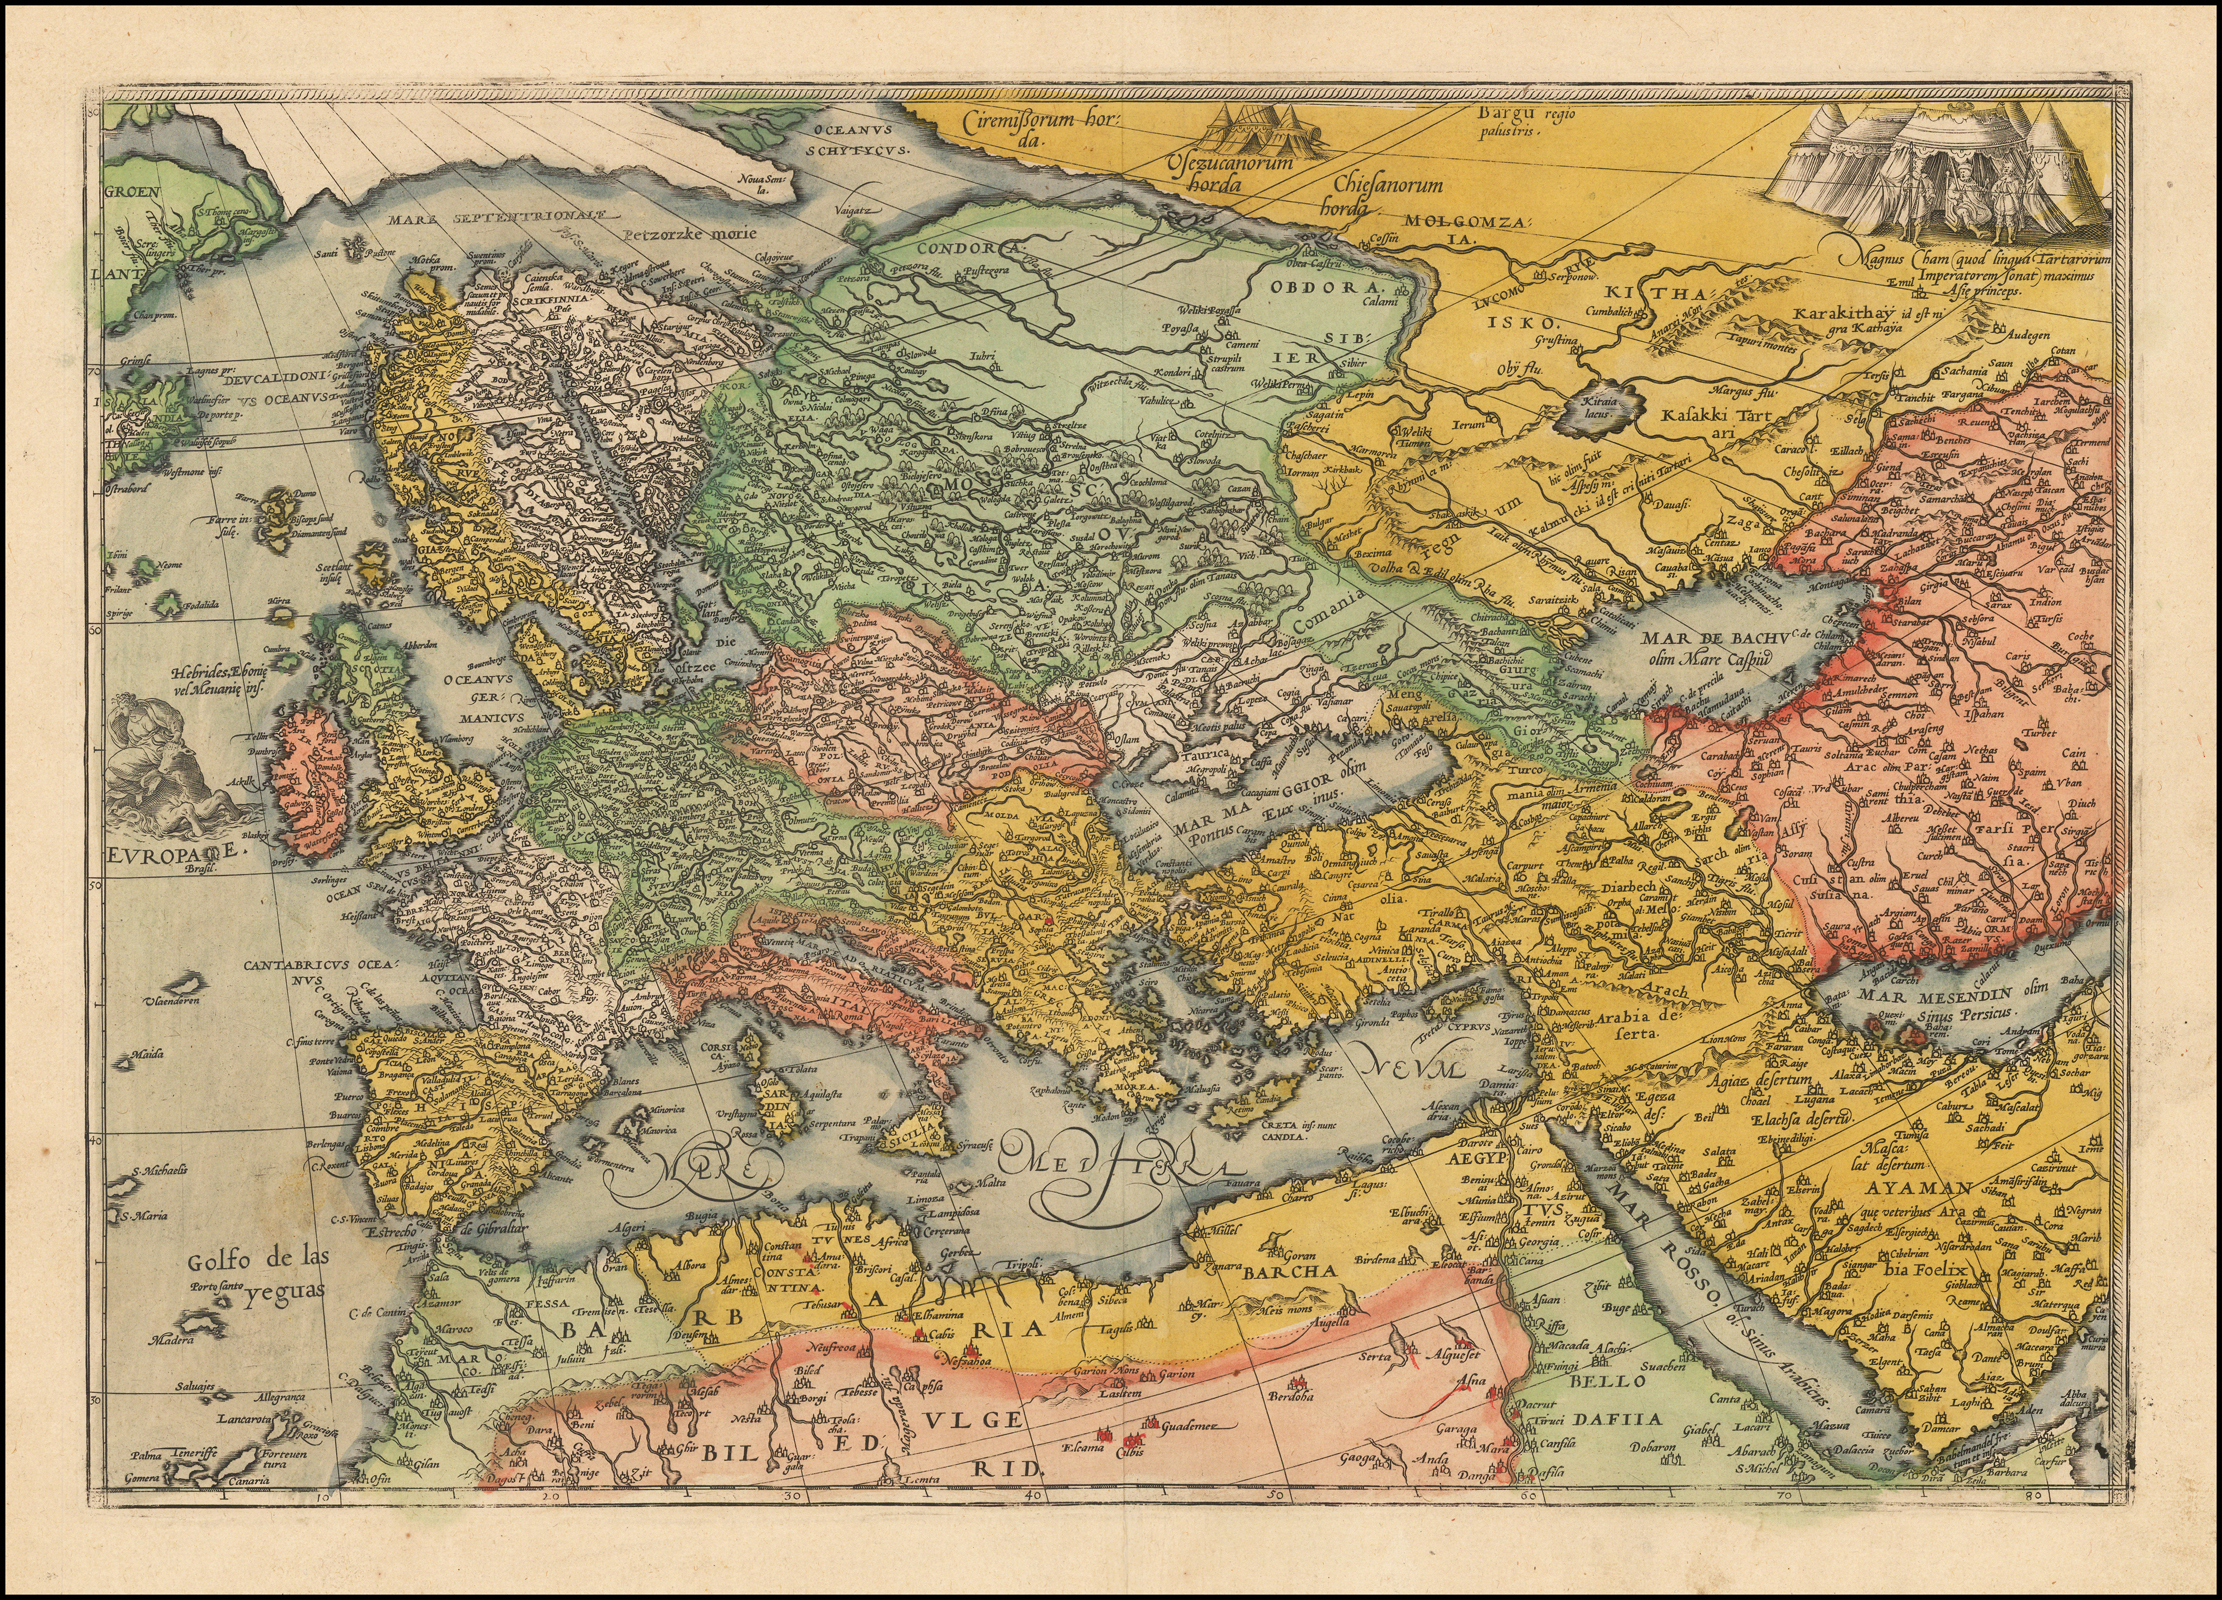 Picture of: Europae With Ottoman And Persian Empires Section From Unknown Wall Map Barry Lawrence Ruderman Antique Maps Inc